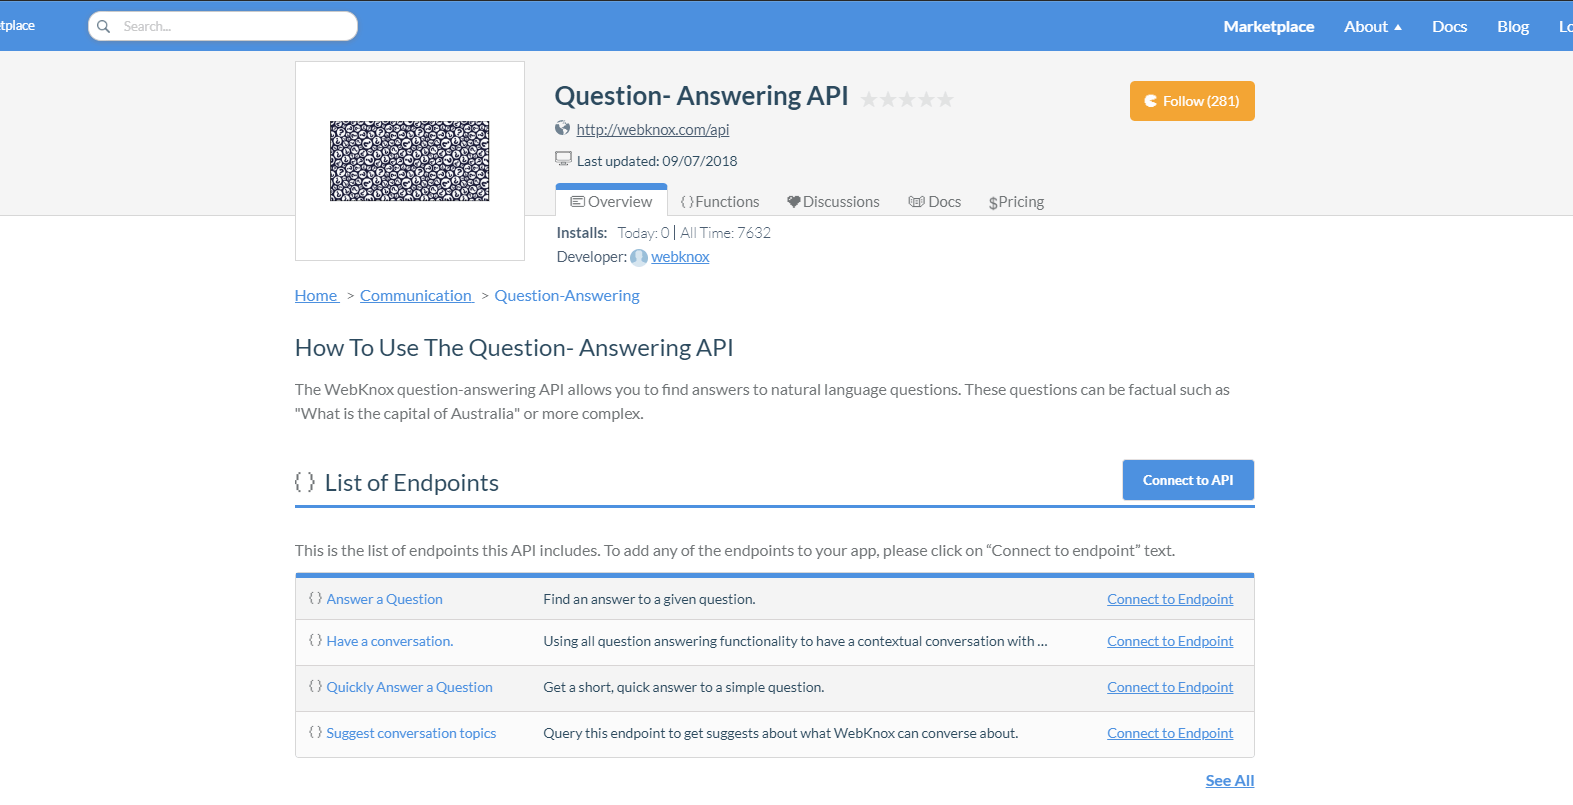 Question-Answering API